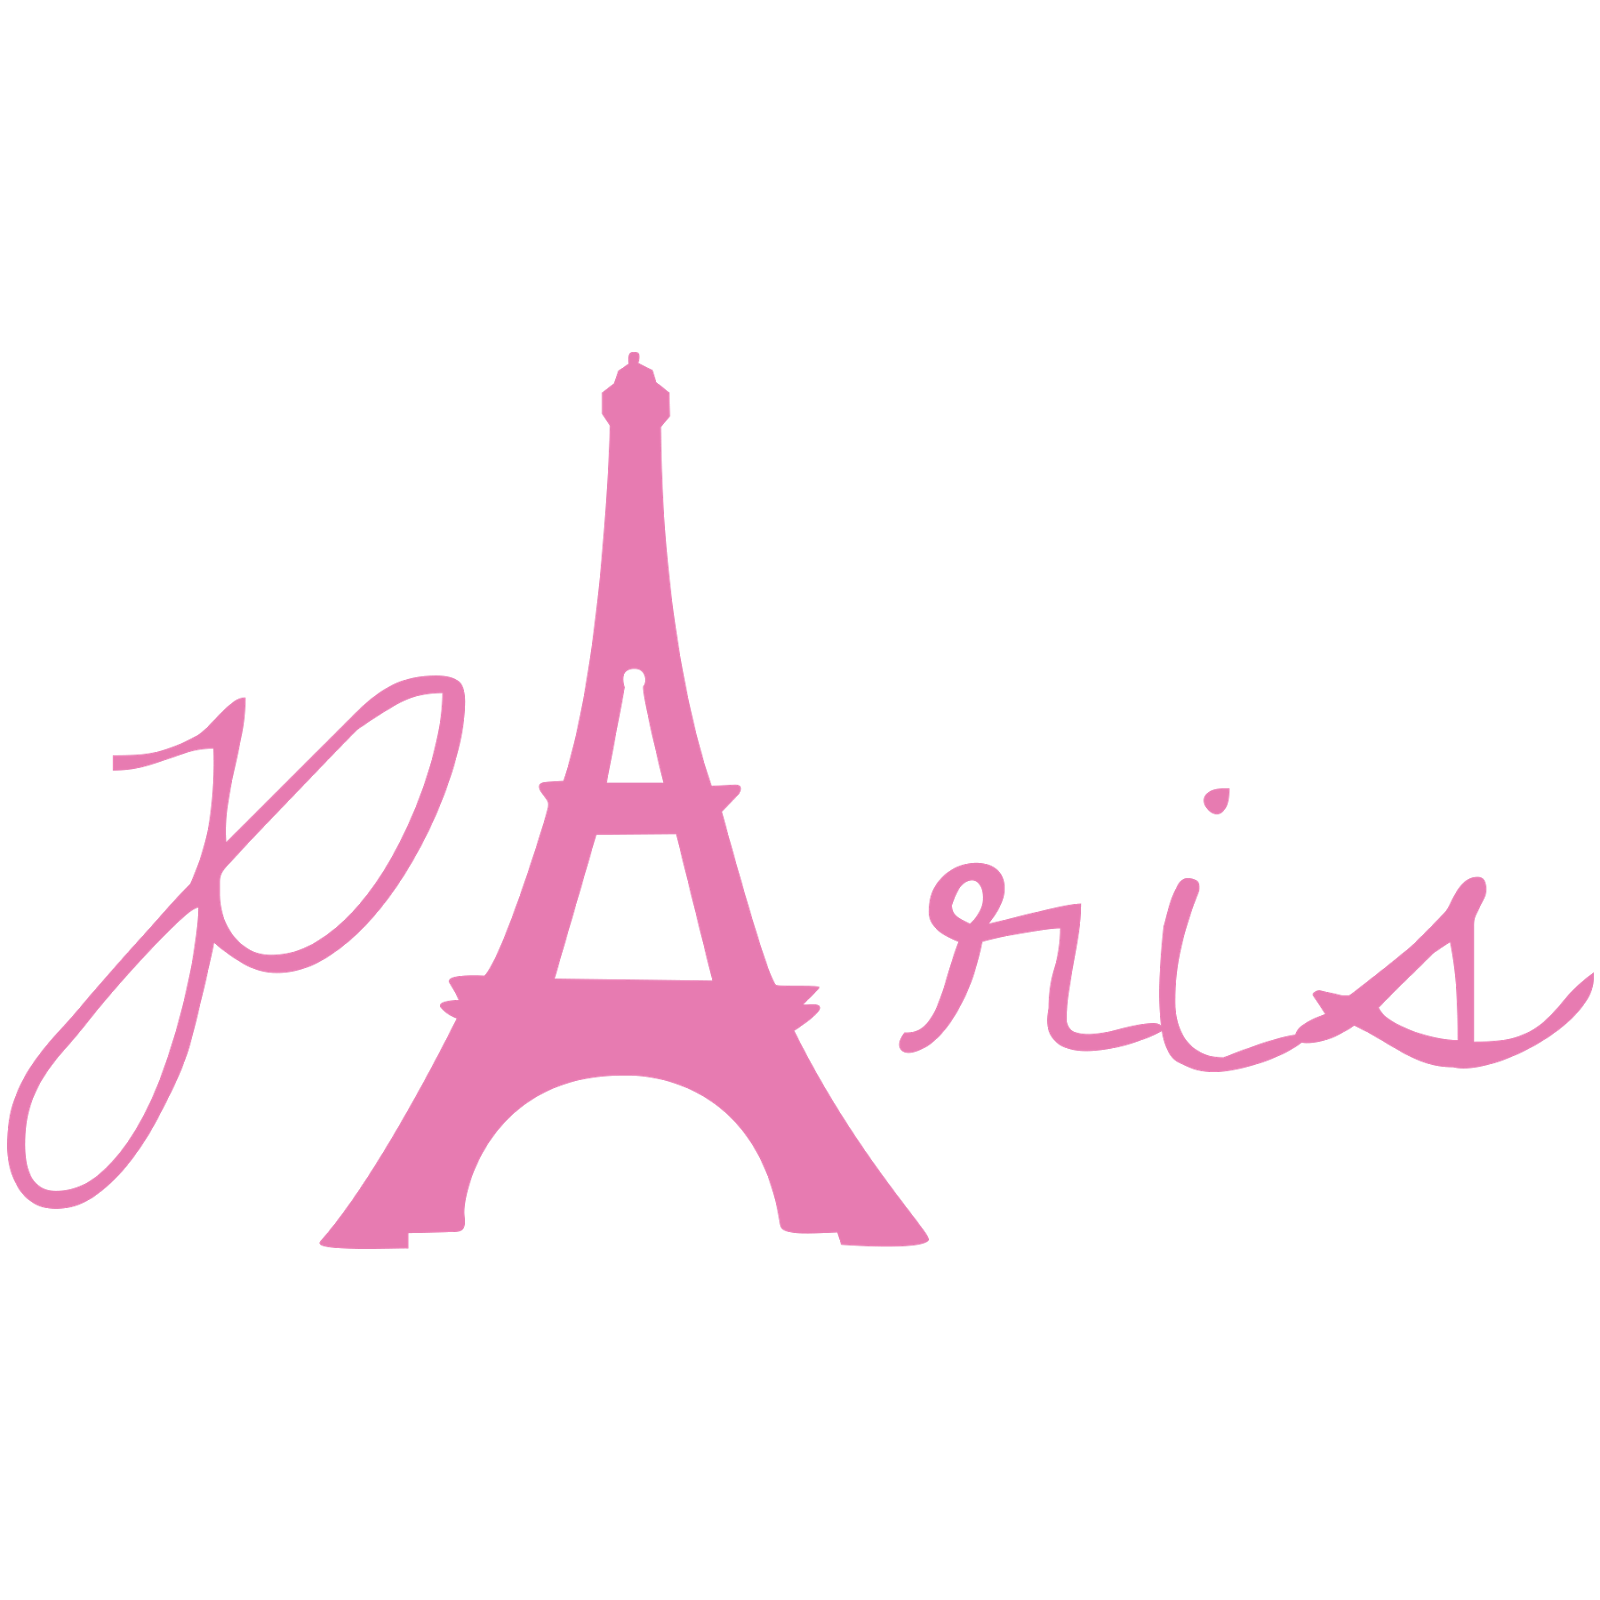 graphic stock Paris clipart. Transparent background free on